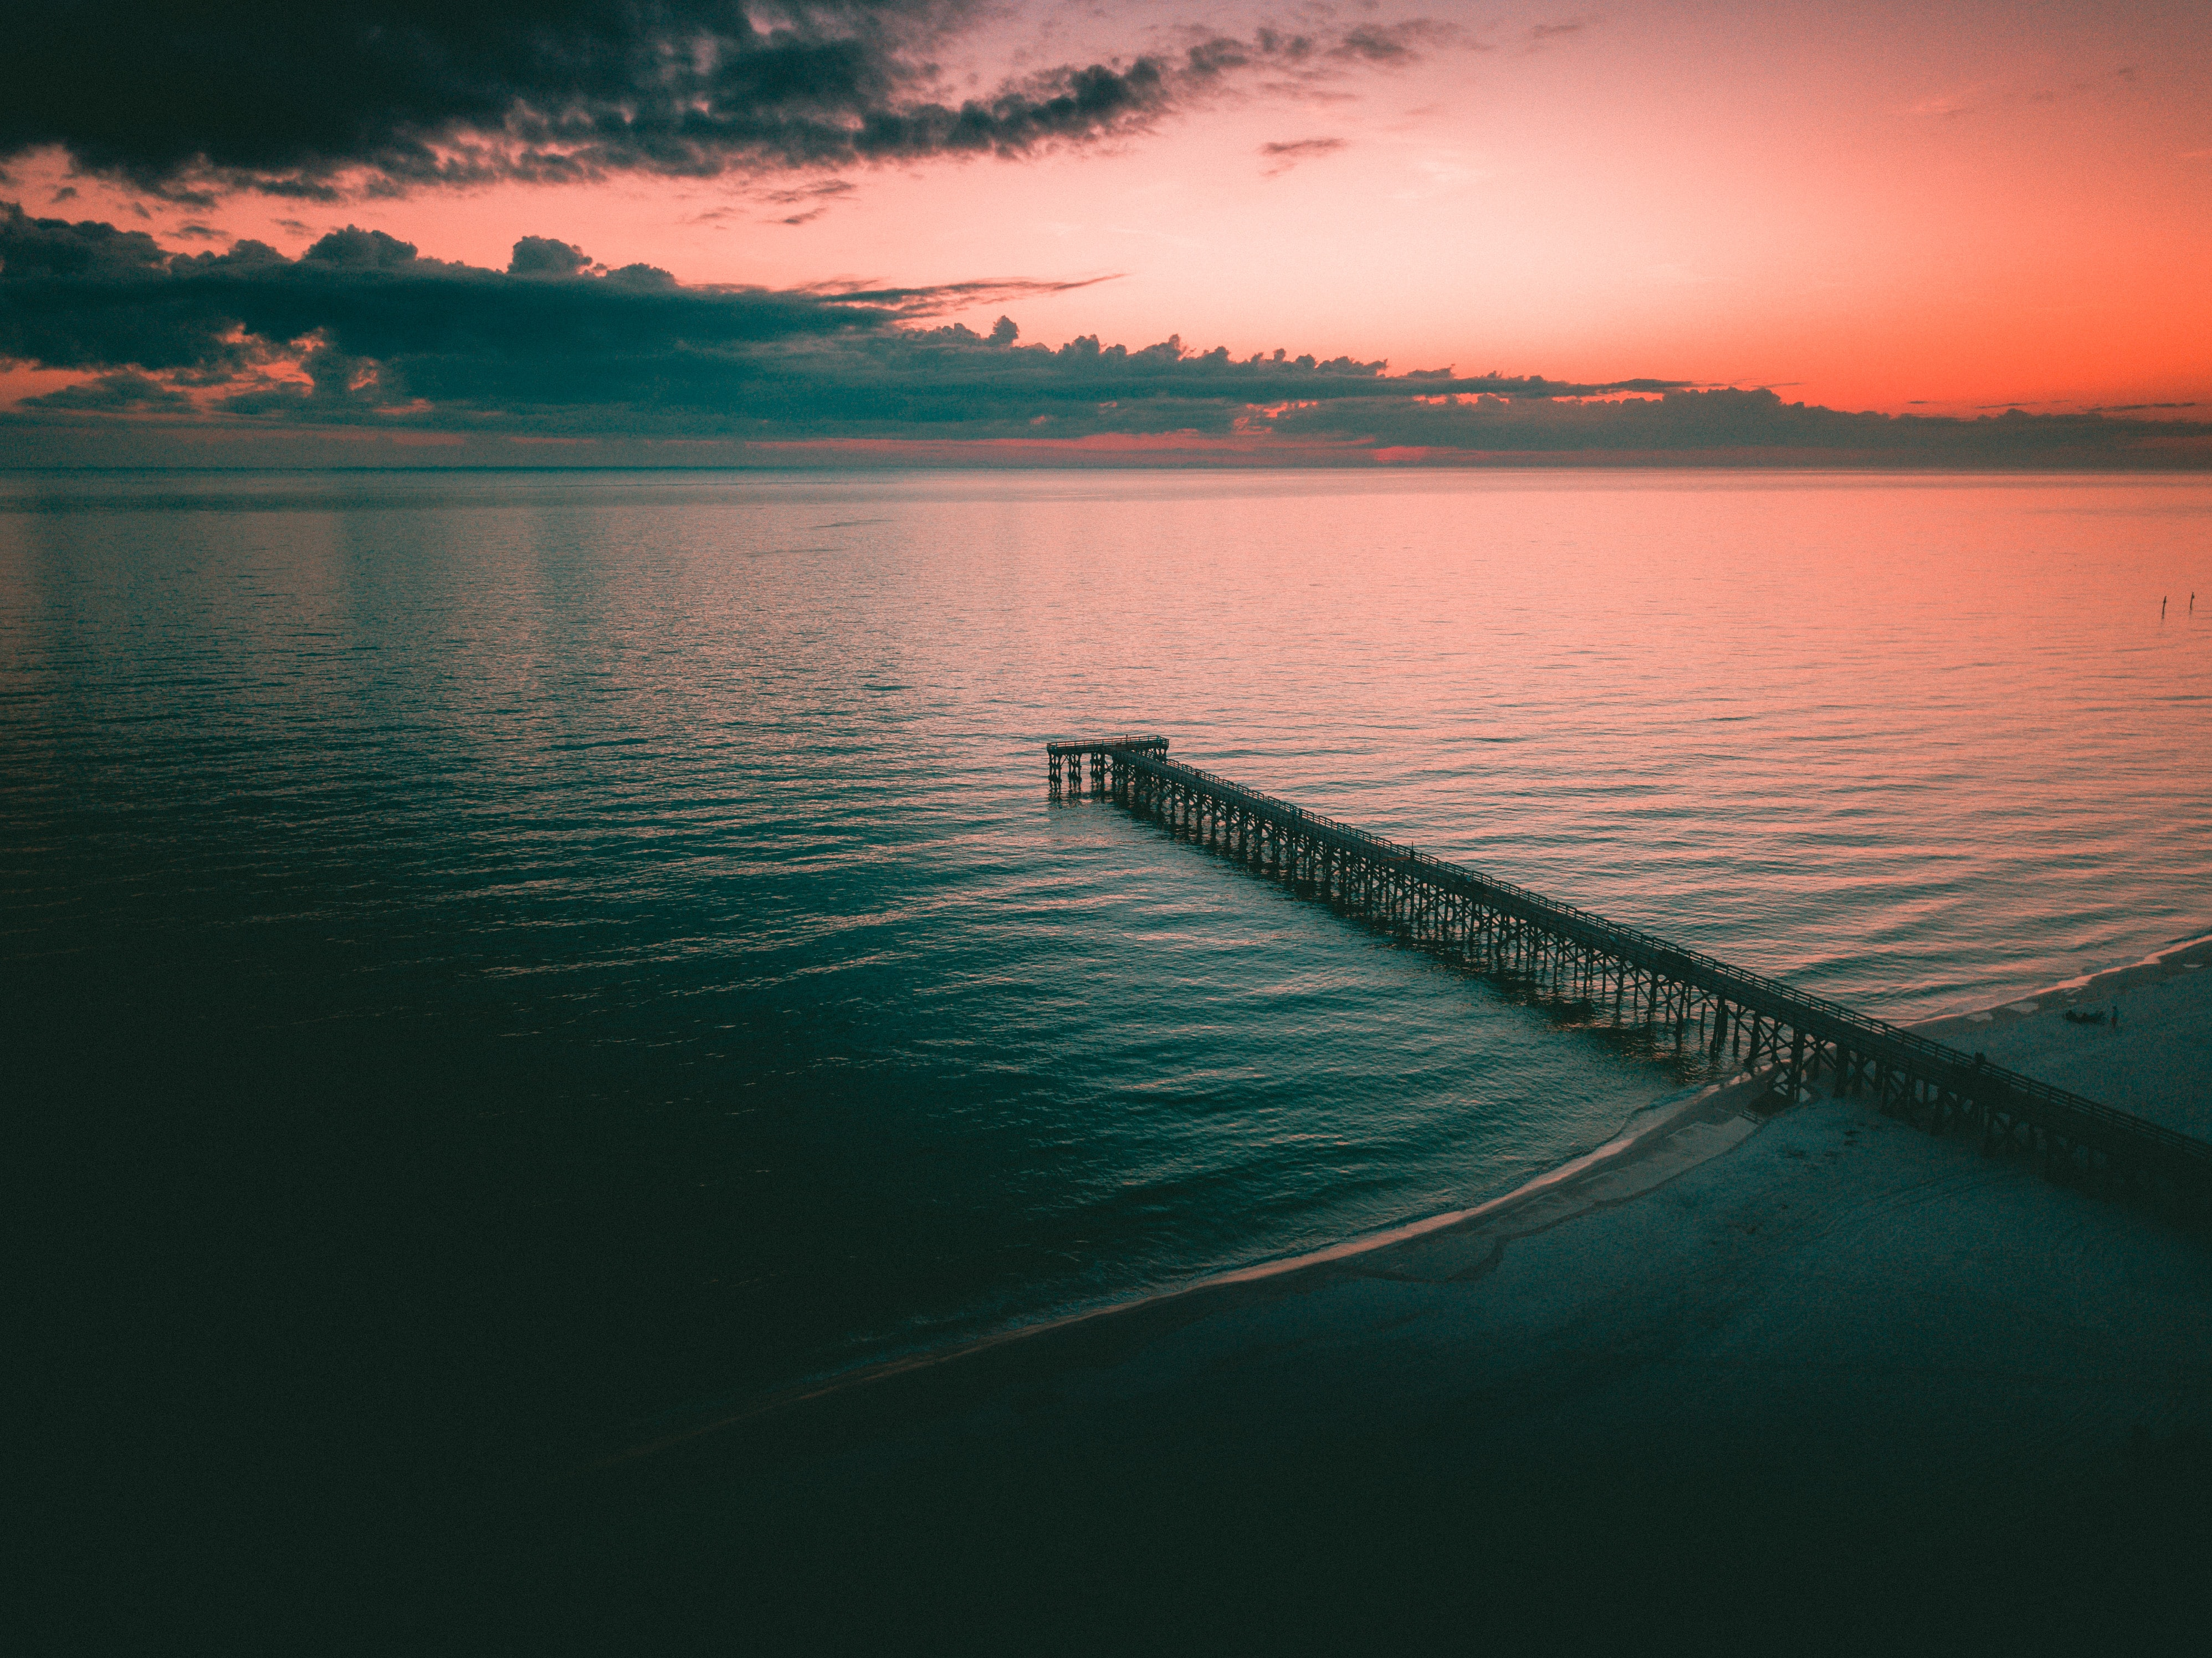 black metal dock on calm water under golden hour